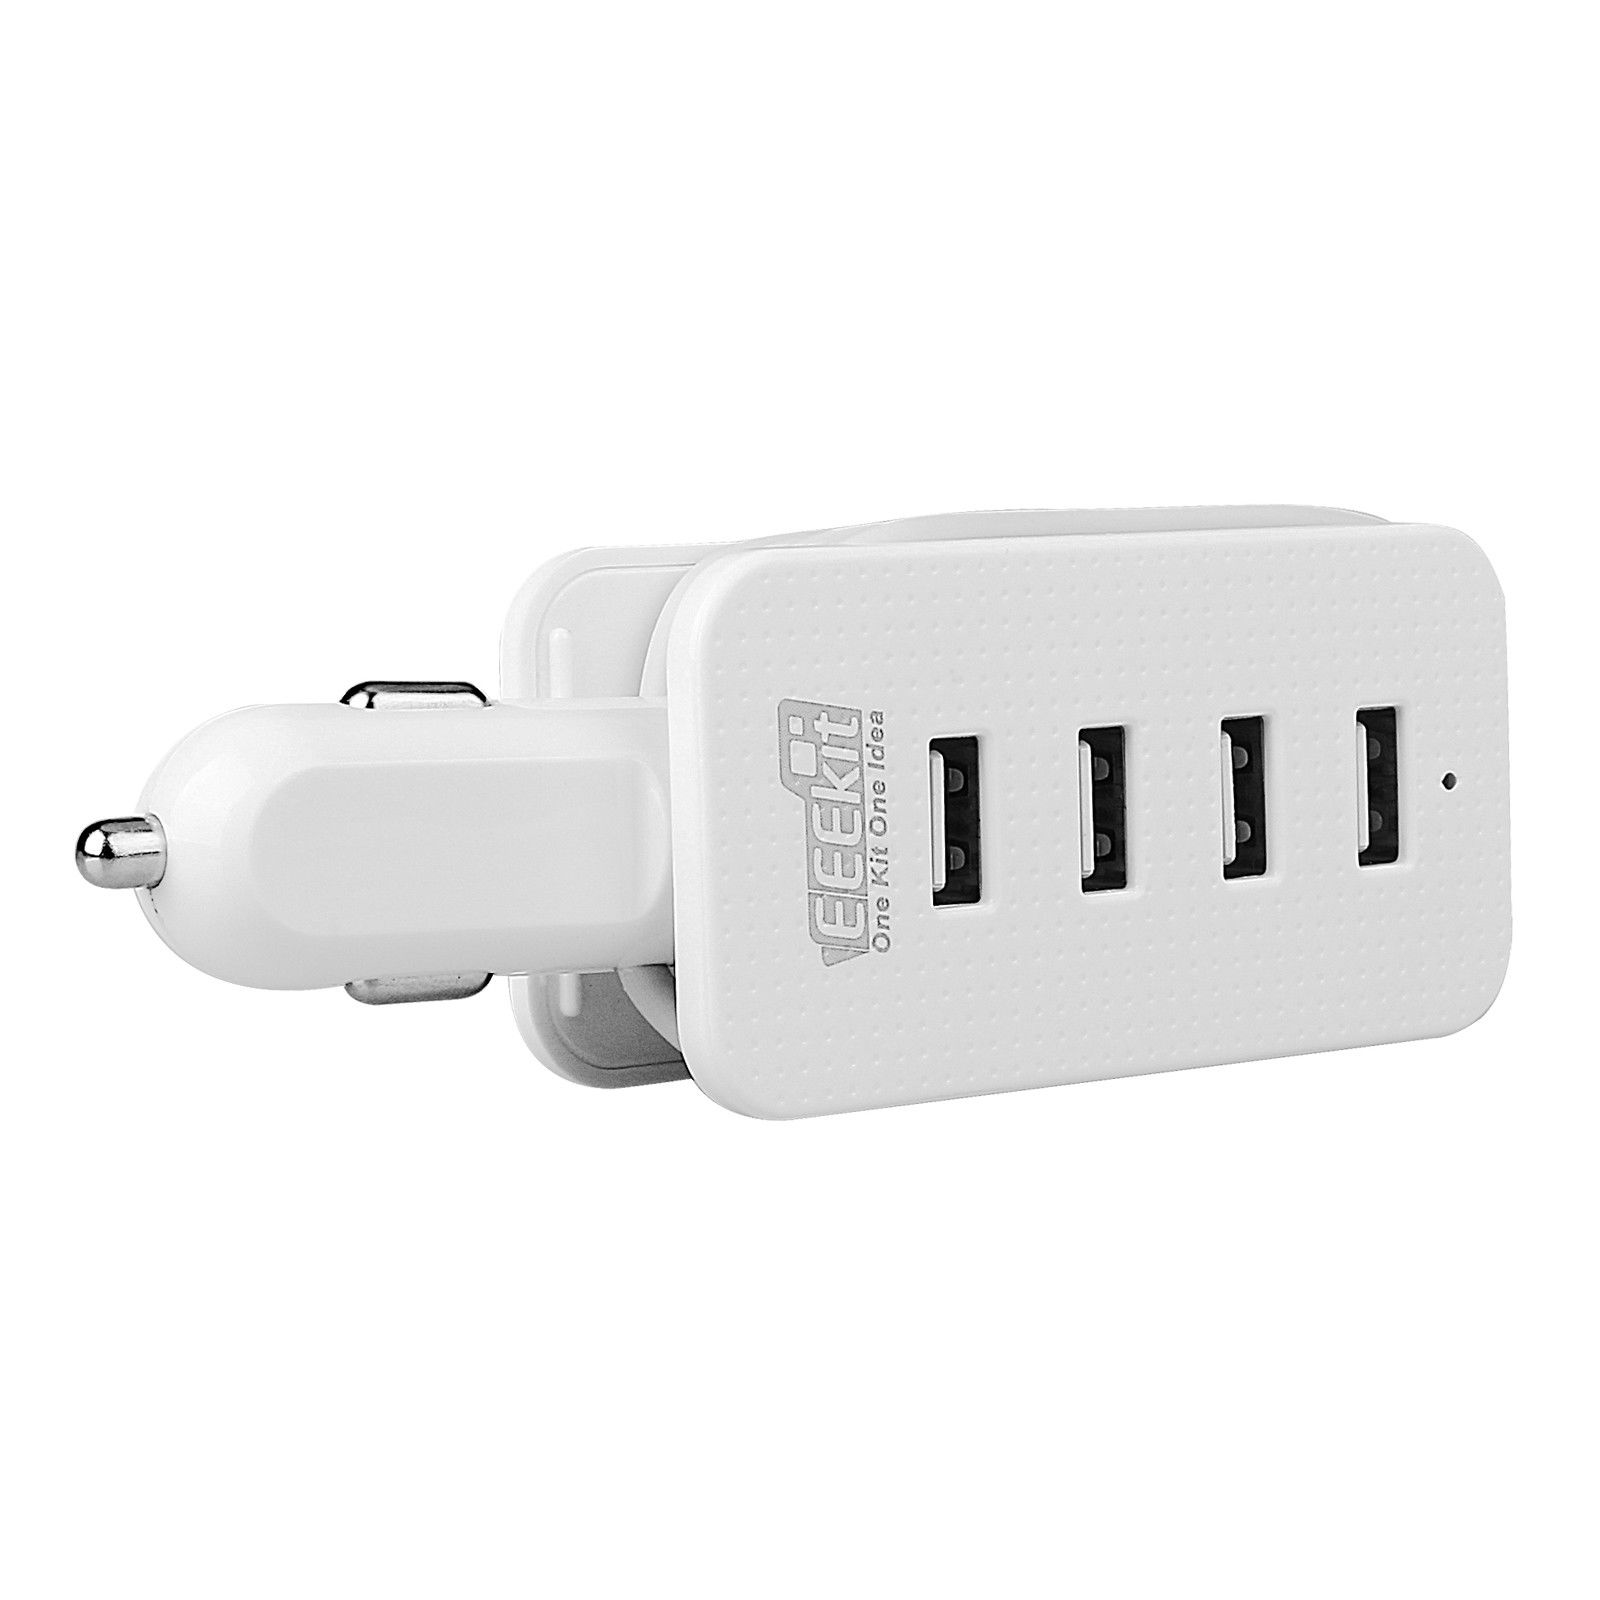 4-USB-Port-Smart-Car-Charger-Vehicle-Power-Charging-Adapter-for-Phone-Tablet-GPS thumbnail 9